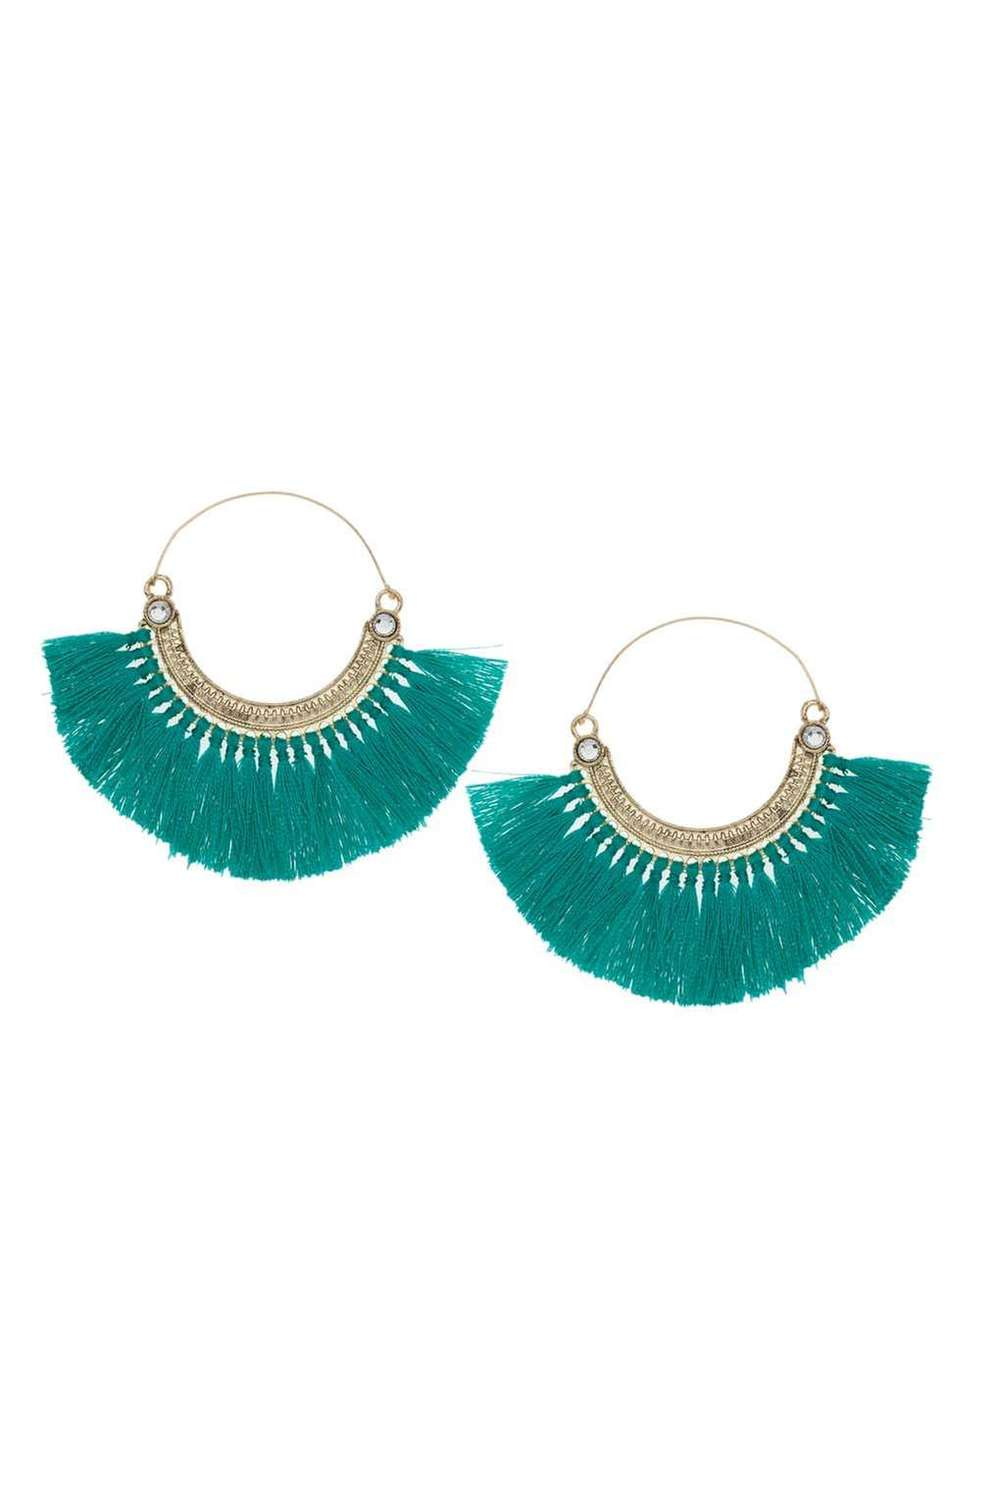 TOPSHOP FRINGED HALF HOOP EARRINGS BY ORELIA - £20